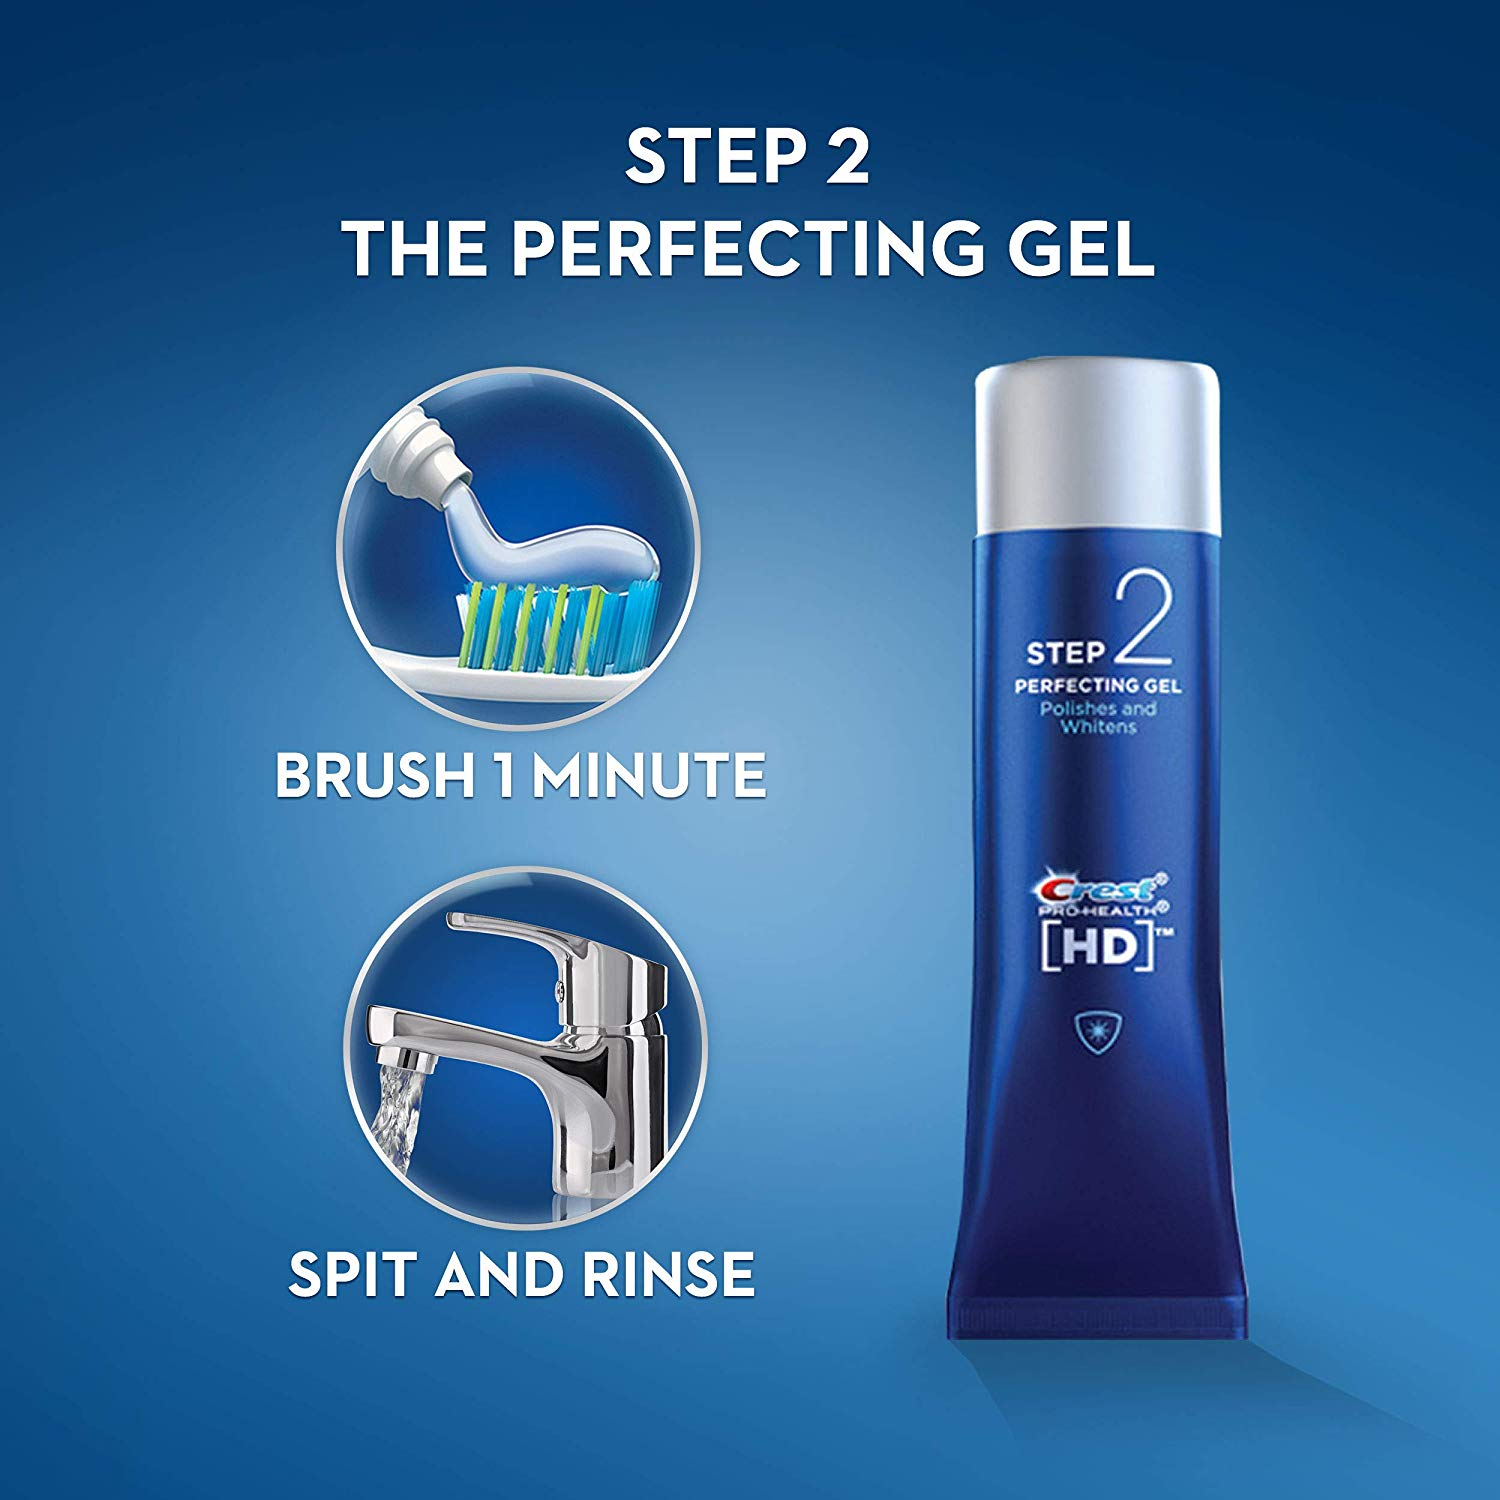 Crest Pro-Health HD Toothpaste, Teeth Whitening and Healthier Mouth via Daily Two-Step System